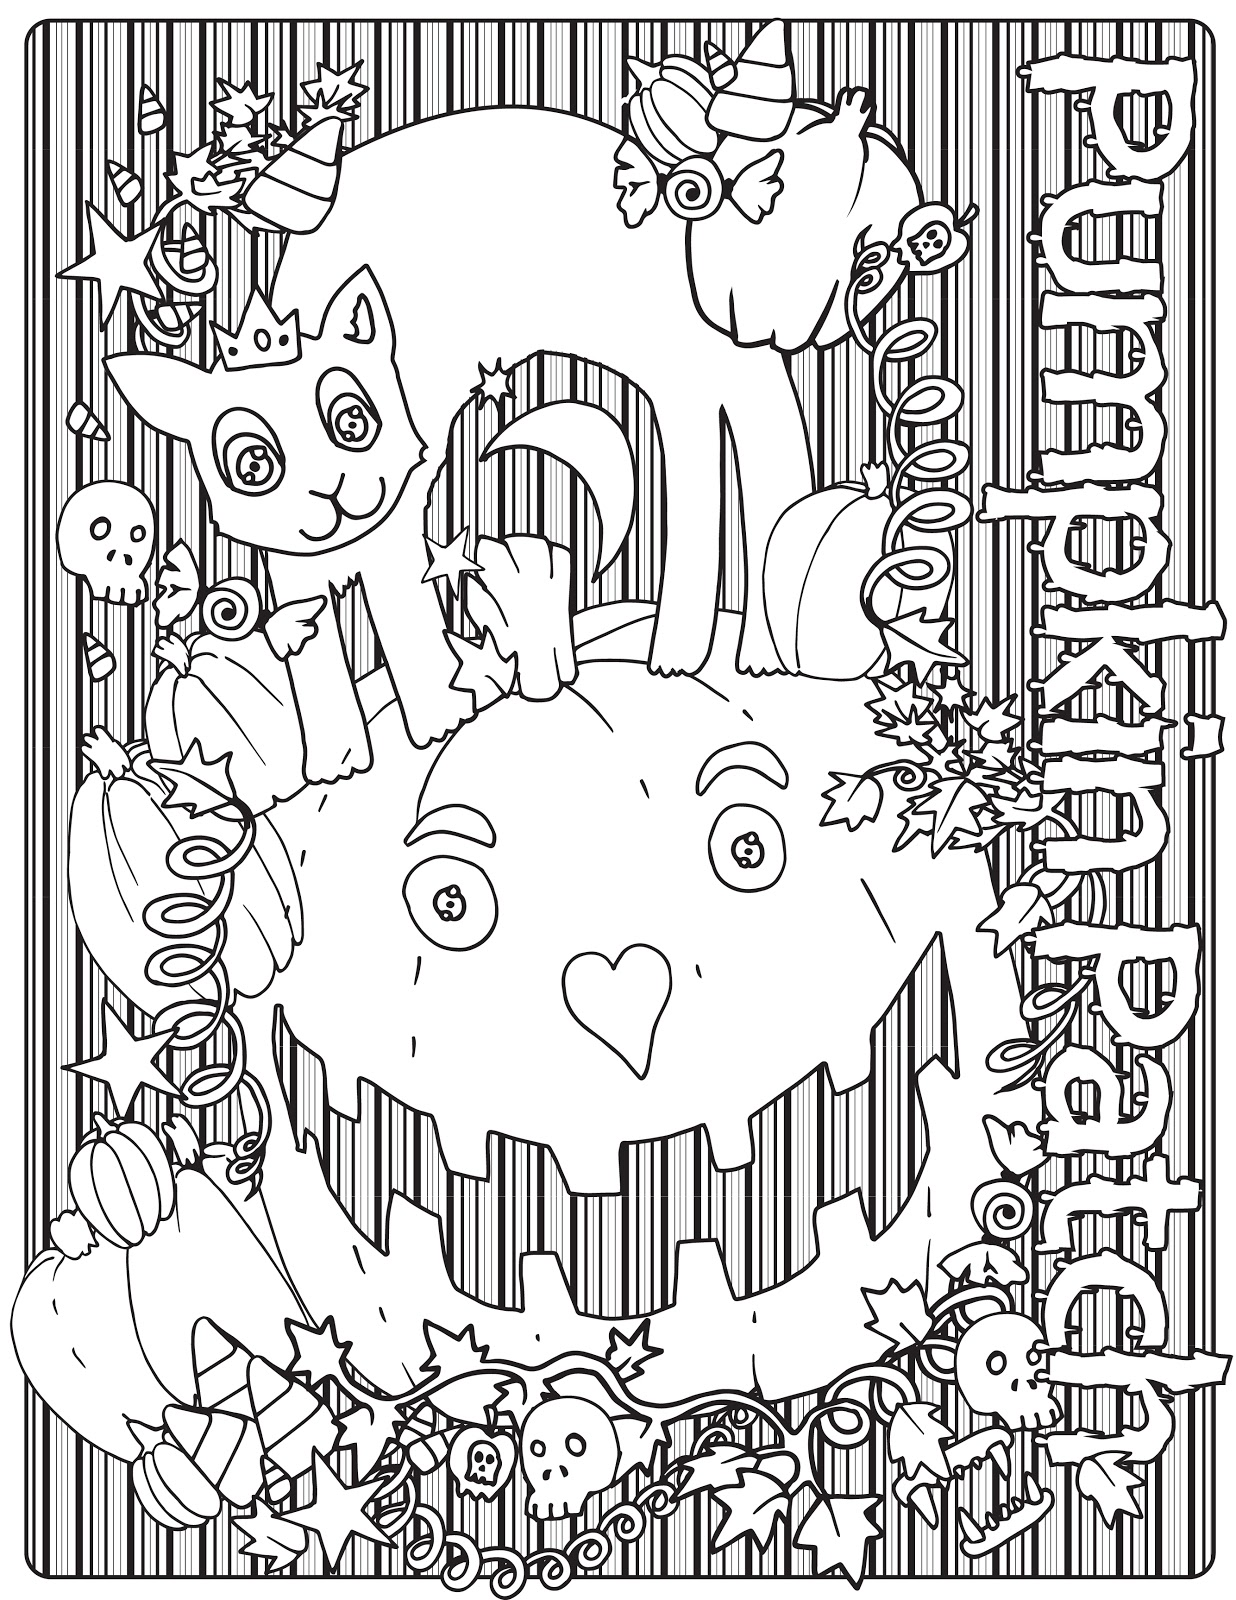 pumpkin patch tv past coloring contest